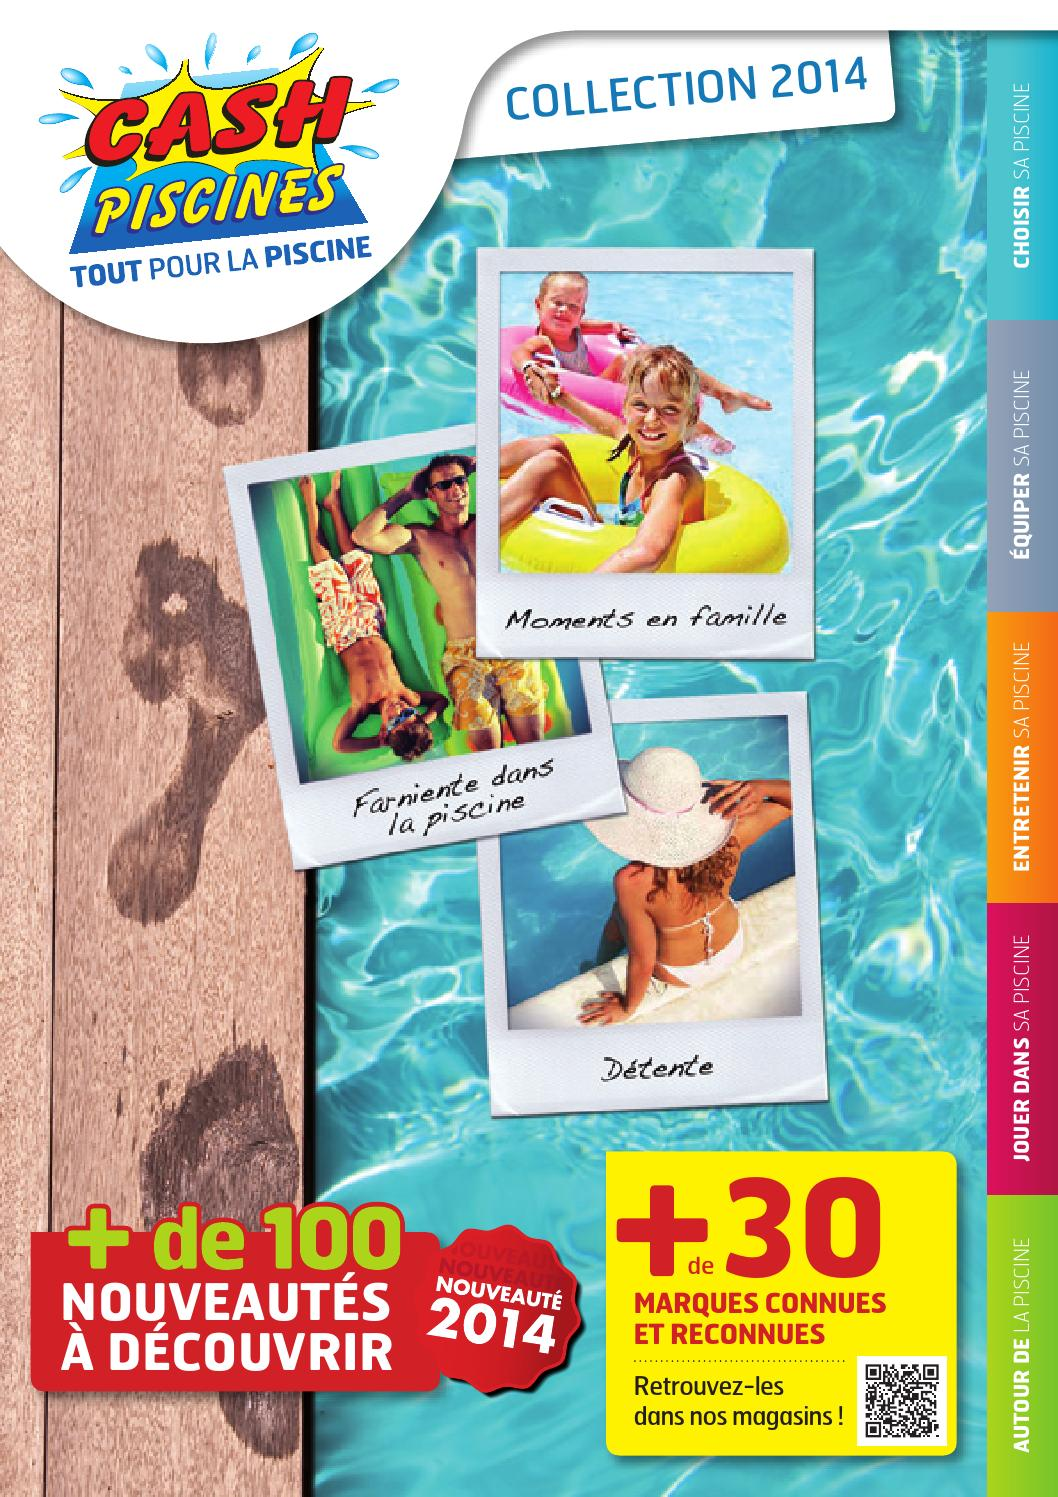 Cash piscines catalogue 2014 by octave octave issuu for Cash piscine